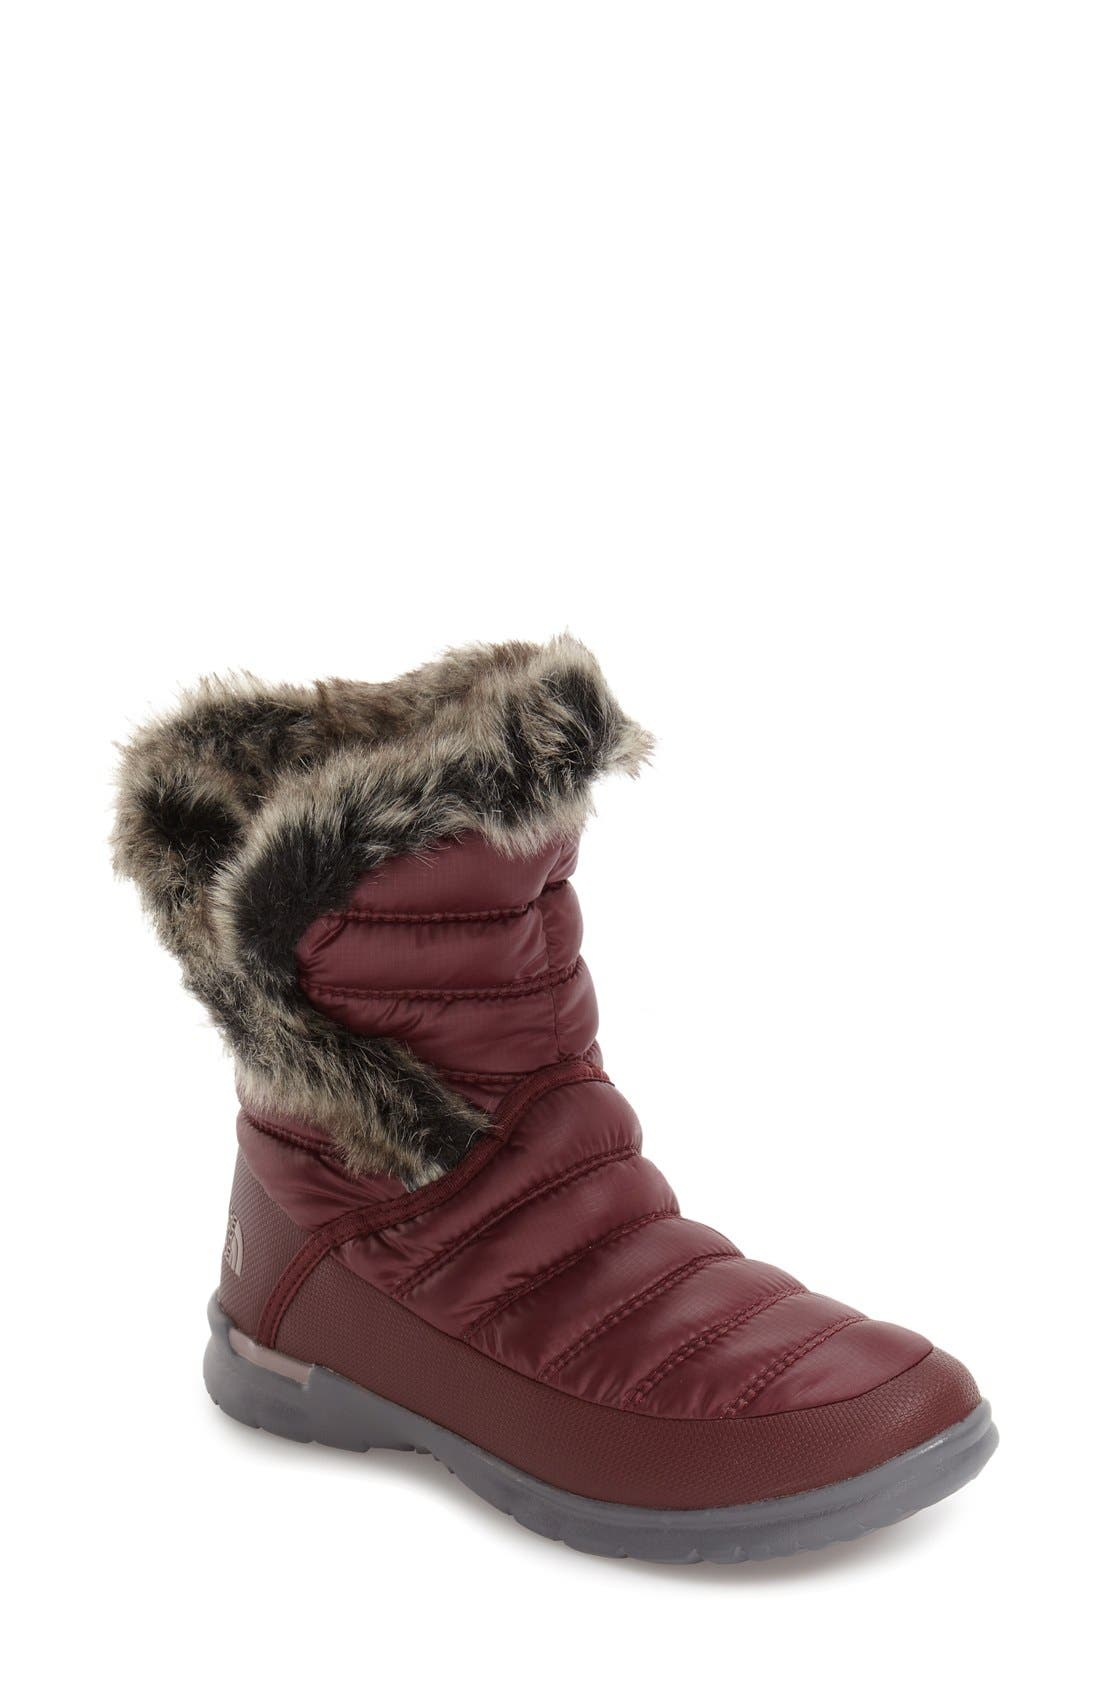 THE NORTH FACE Microbaffle Waterproof ThermoBall<sup>®</sup> Insulated Winter Boot